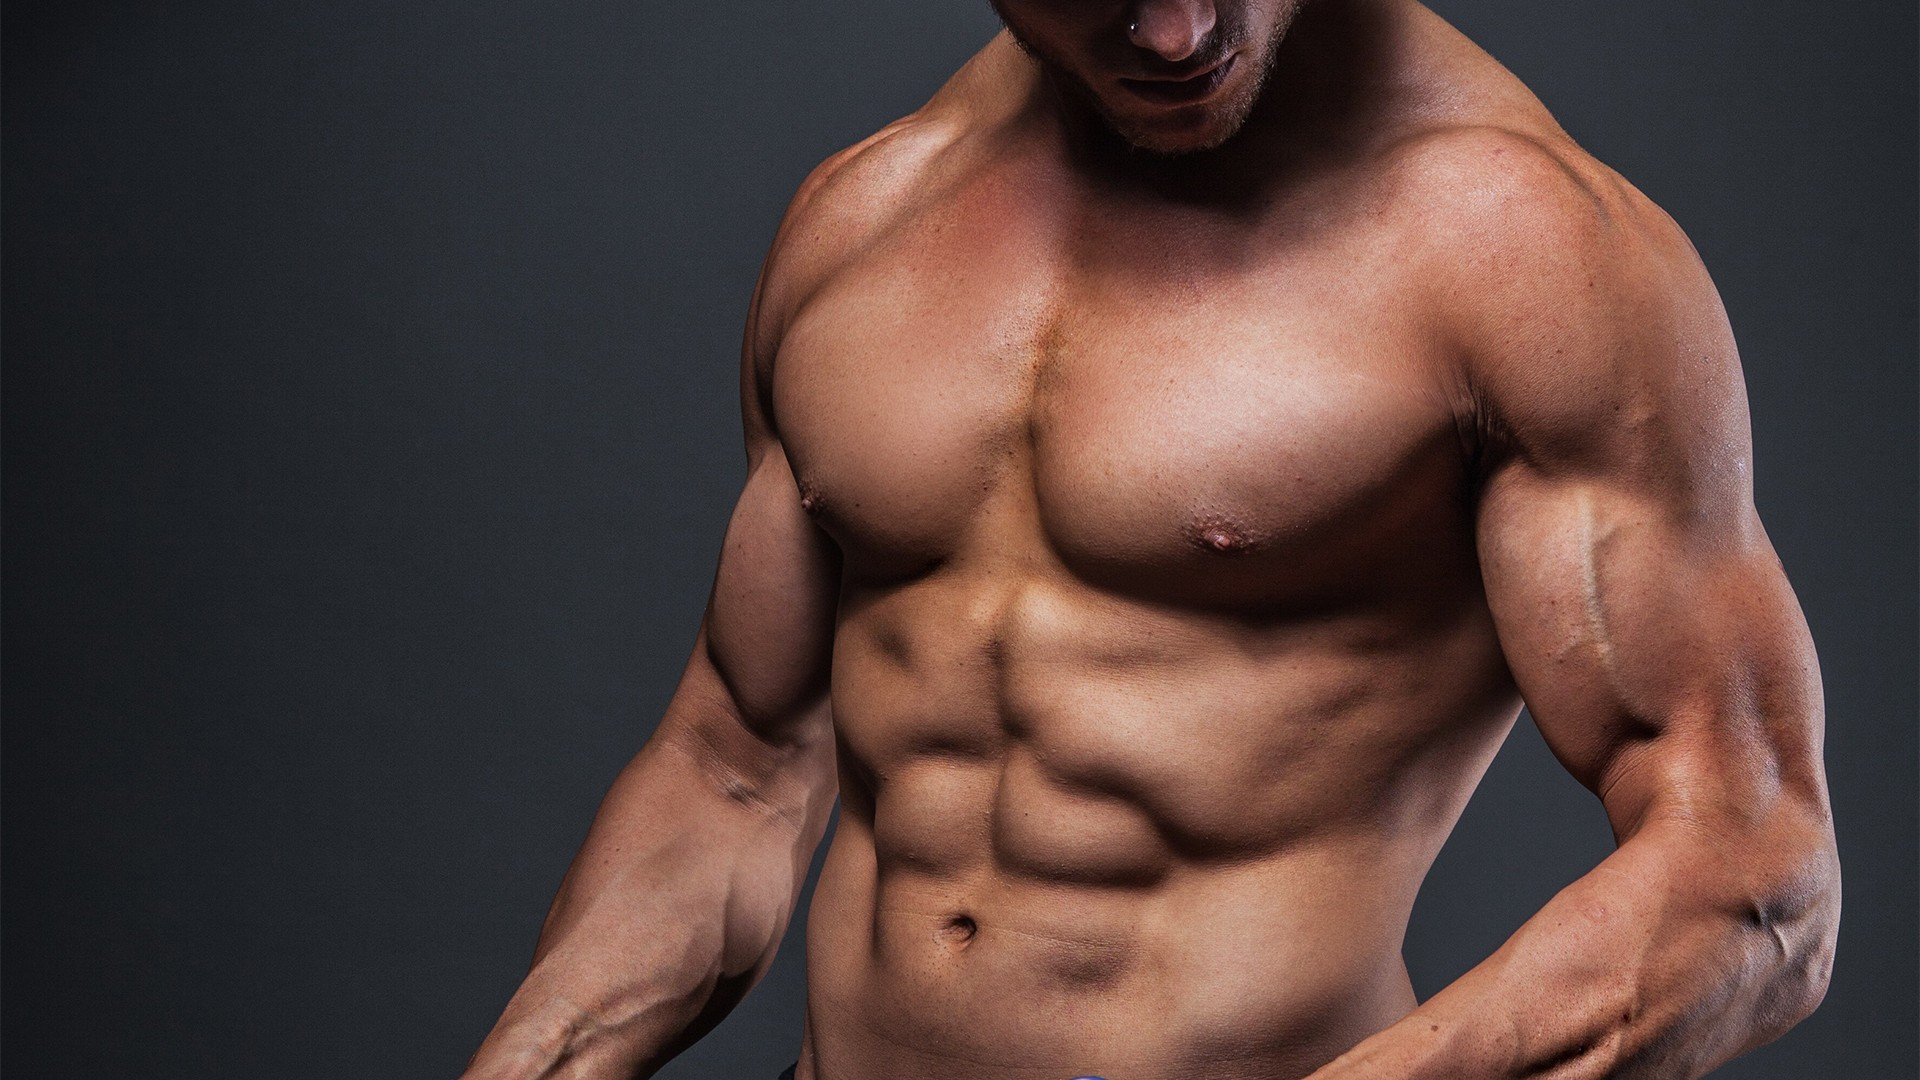 Eat These Foods If You Want Bigger Muscles